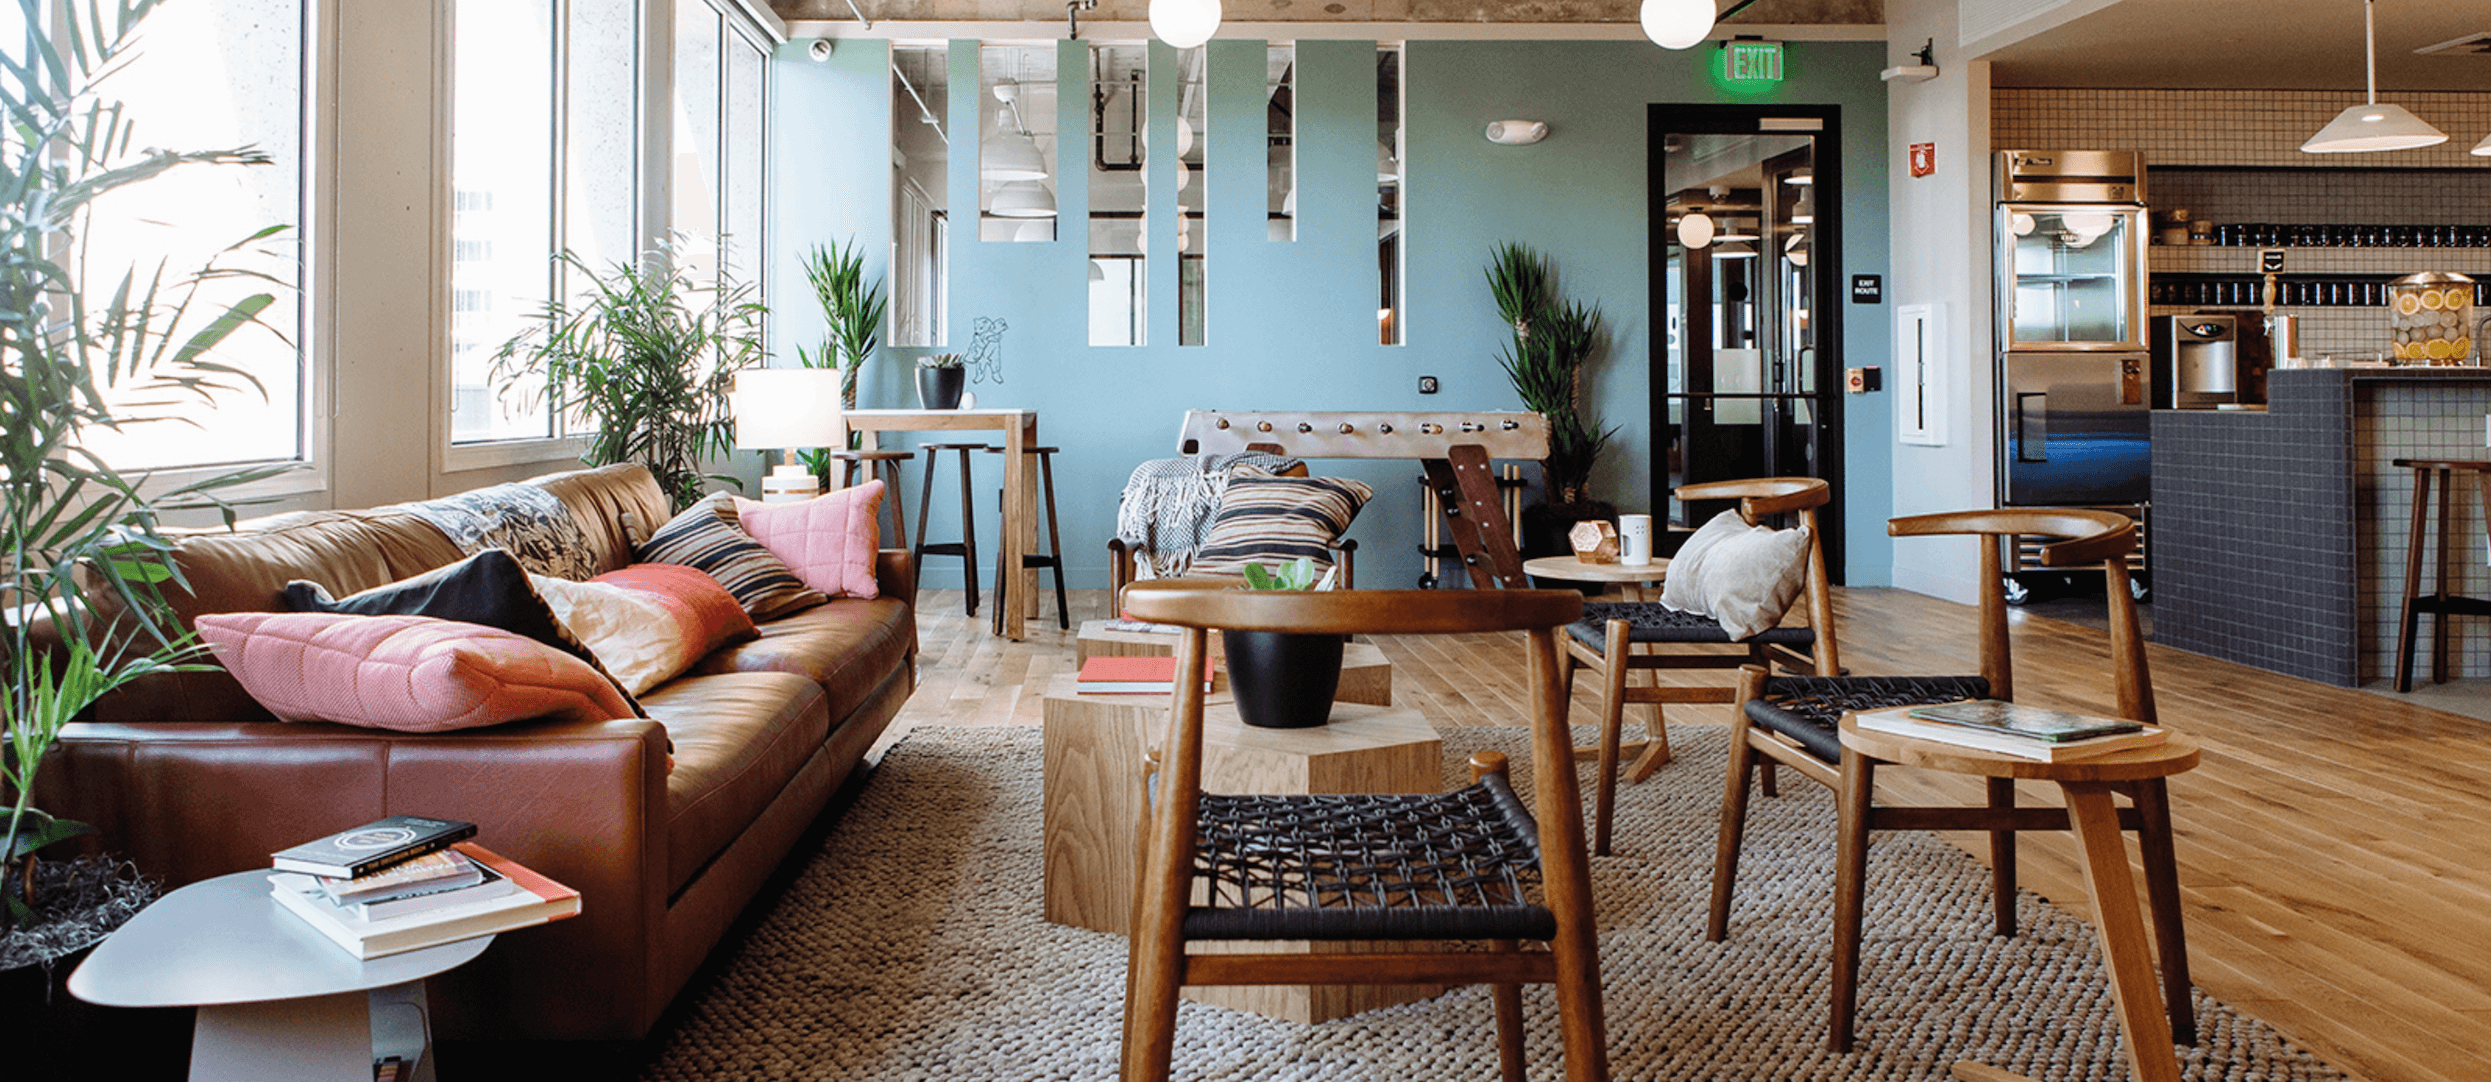 WeWork: Eco-friendly flooring for an eco-minded company